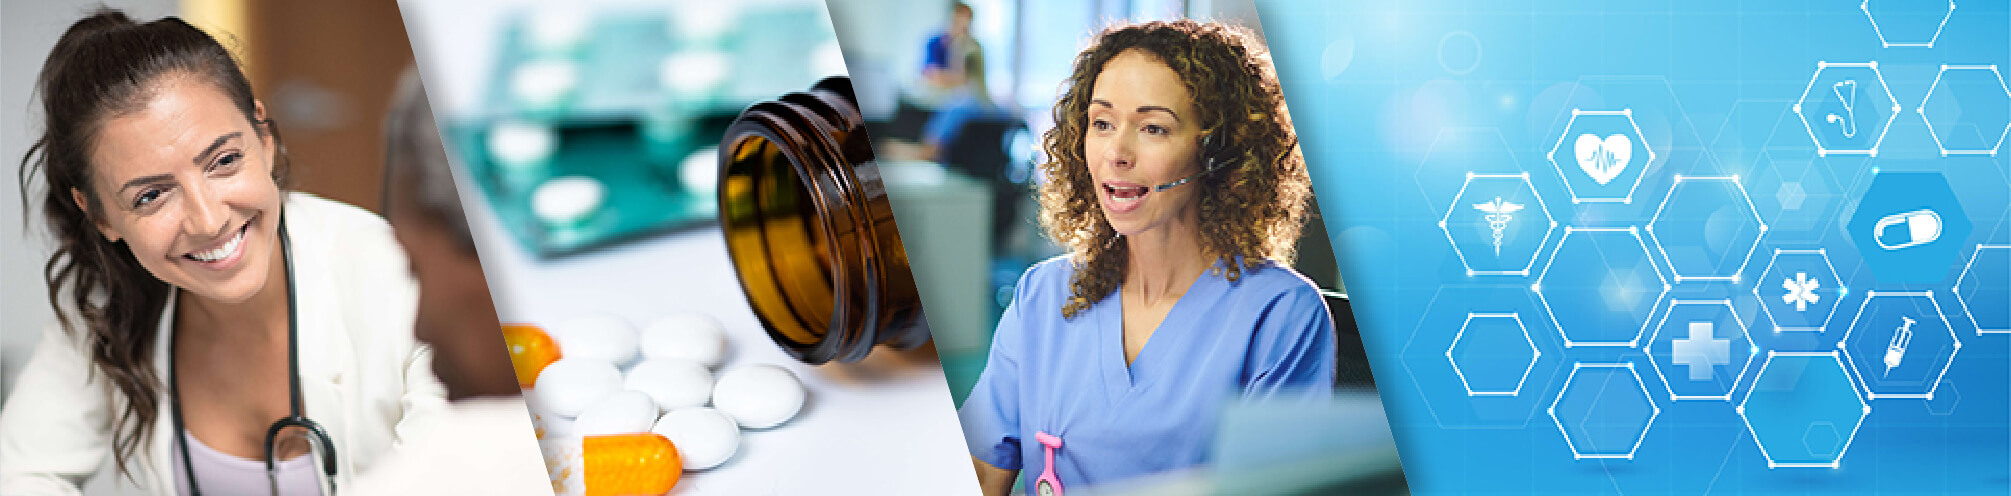 collage of images including female doctor with patient, bottle of medicine with pills, female medical professional at computer, and an abstract image of hexagons and medical symbols.